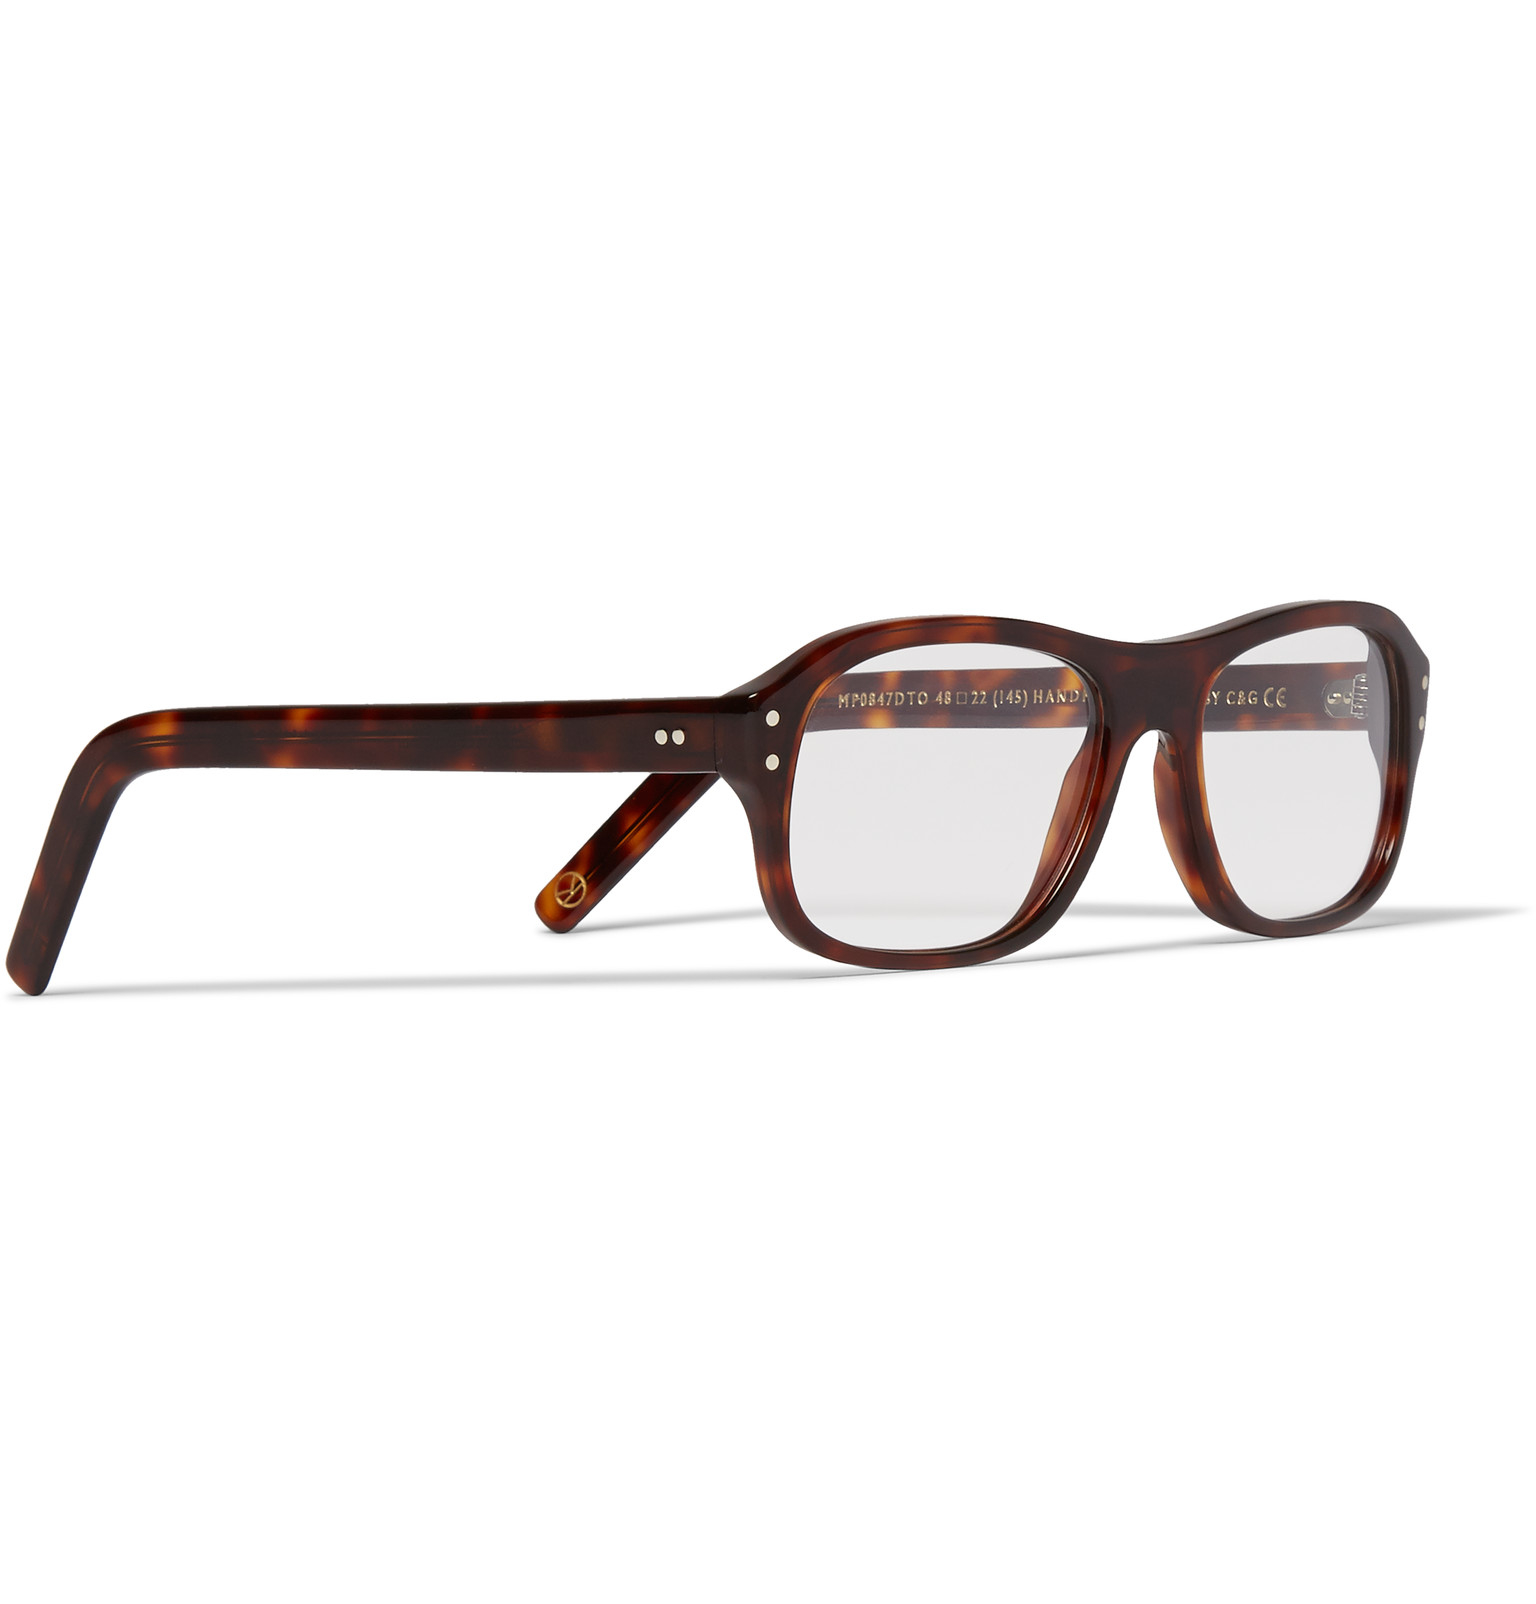 Kingsman Glasses Frame : Kingsman + Cutler And Gross Square-frame Tortoiseshell ...